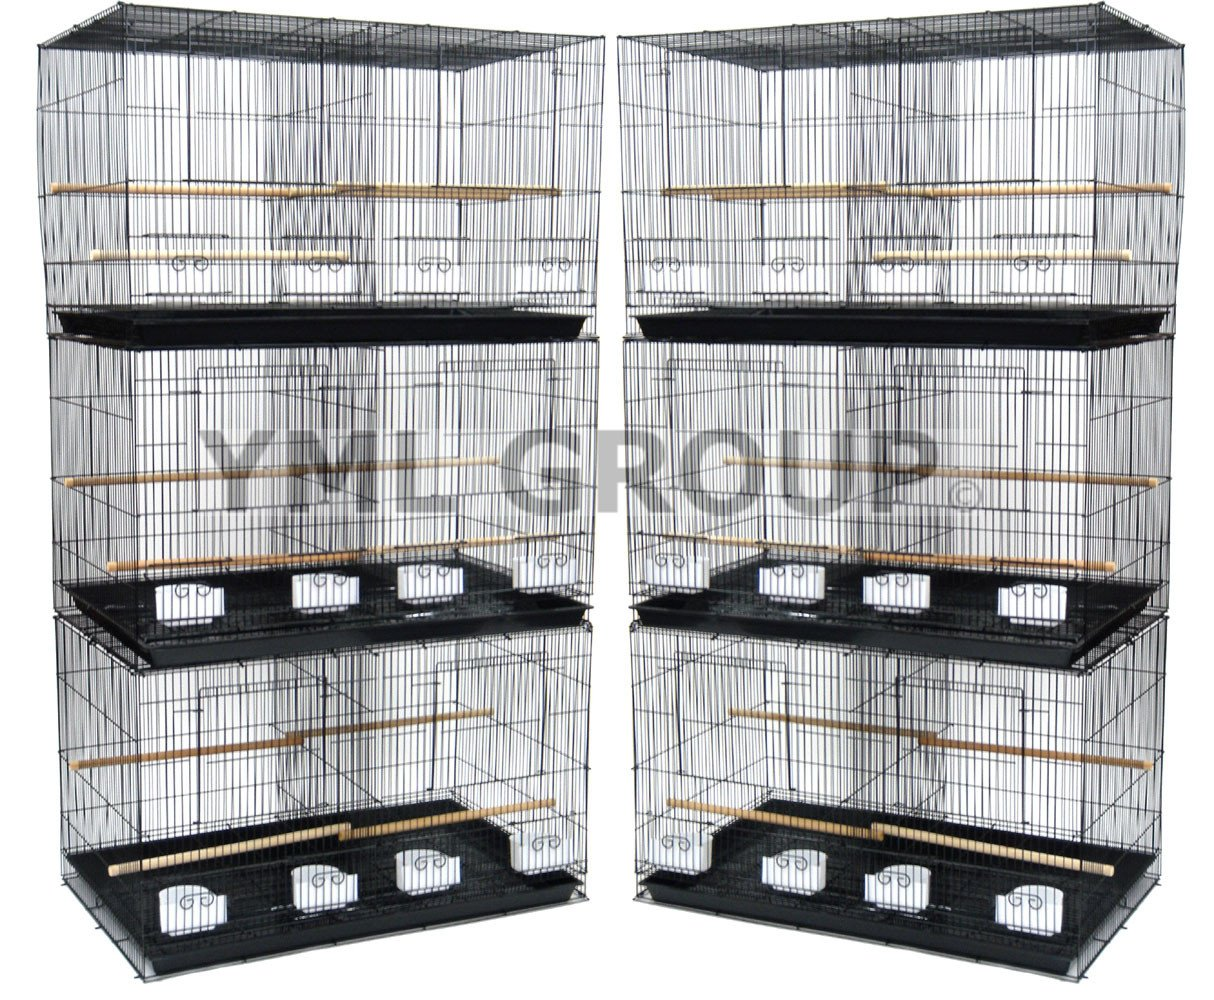 YML Group 6x2434BLK Lot of 6 Small Breeding Cages with Divider, Black from YML Group